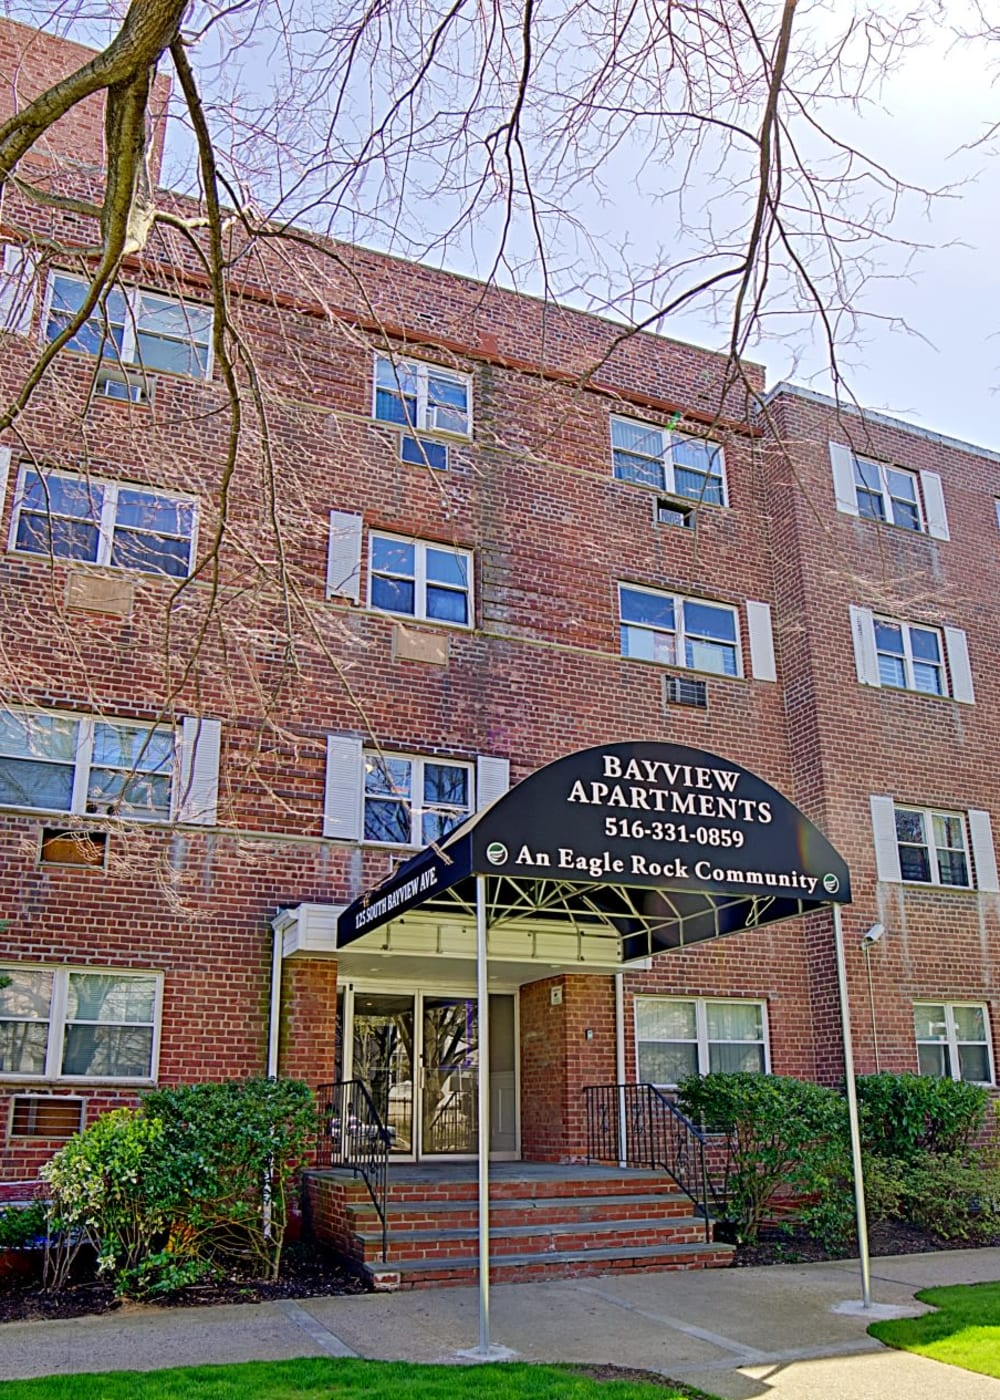 Freeport Ny Apartments For Rent Bellmore Bayview Apartments